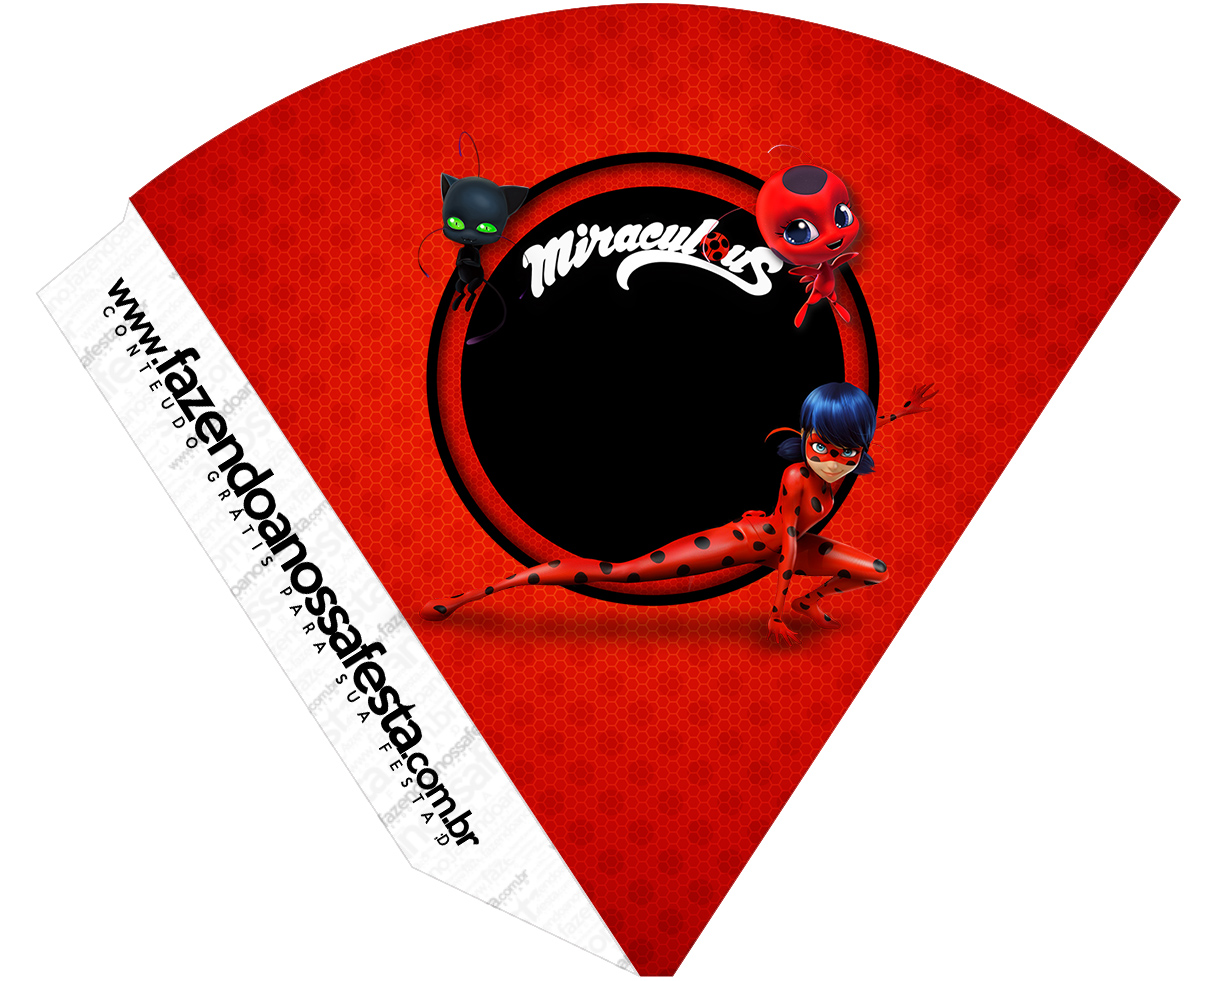 Decorations For Birthday Party At Home Miraculous Ladybug Free Party Printables Oh My Fiesta